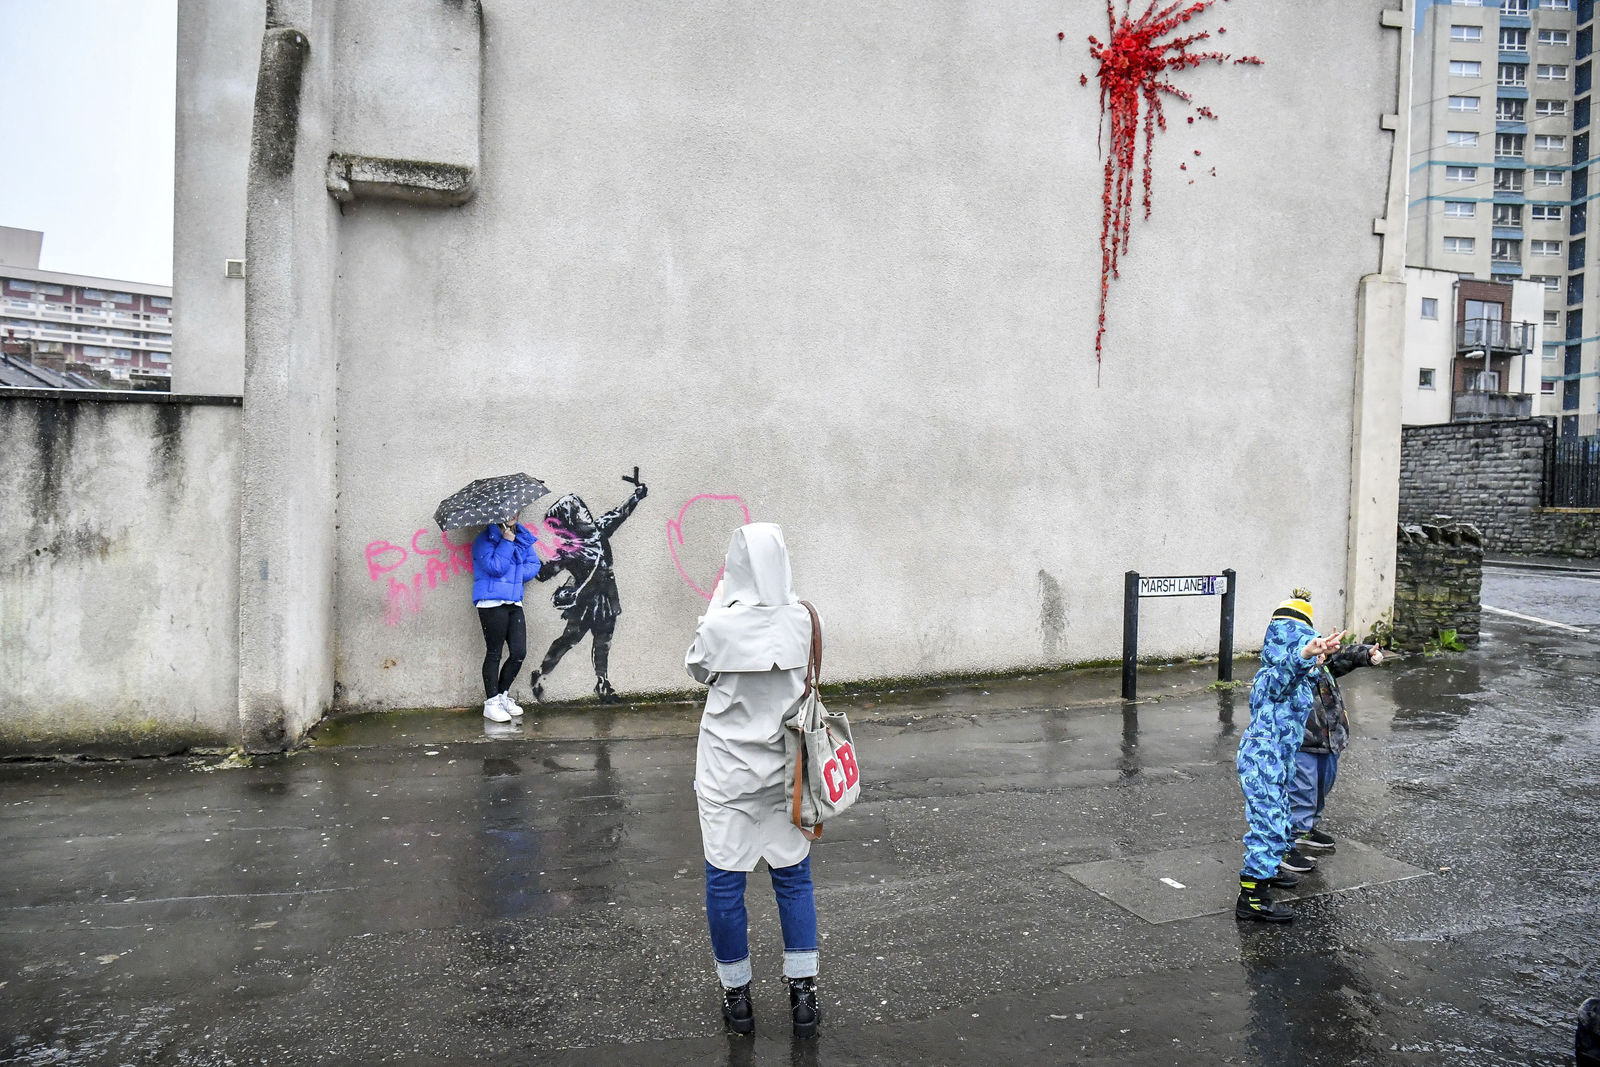 People take photos of a mural by Bansky which has been vandalised, on the side of a house on Marsh Lane, in Barton Hill, Bristol, England, Saturday, Feb. 15, 2020. The artwork was confirmed as being by artist Bansky on Valentine's day. (Ben Birchall/PA via AP)